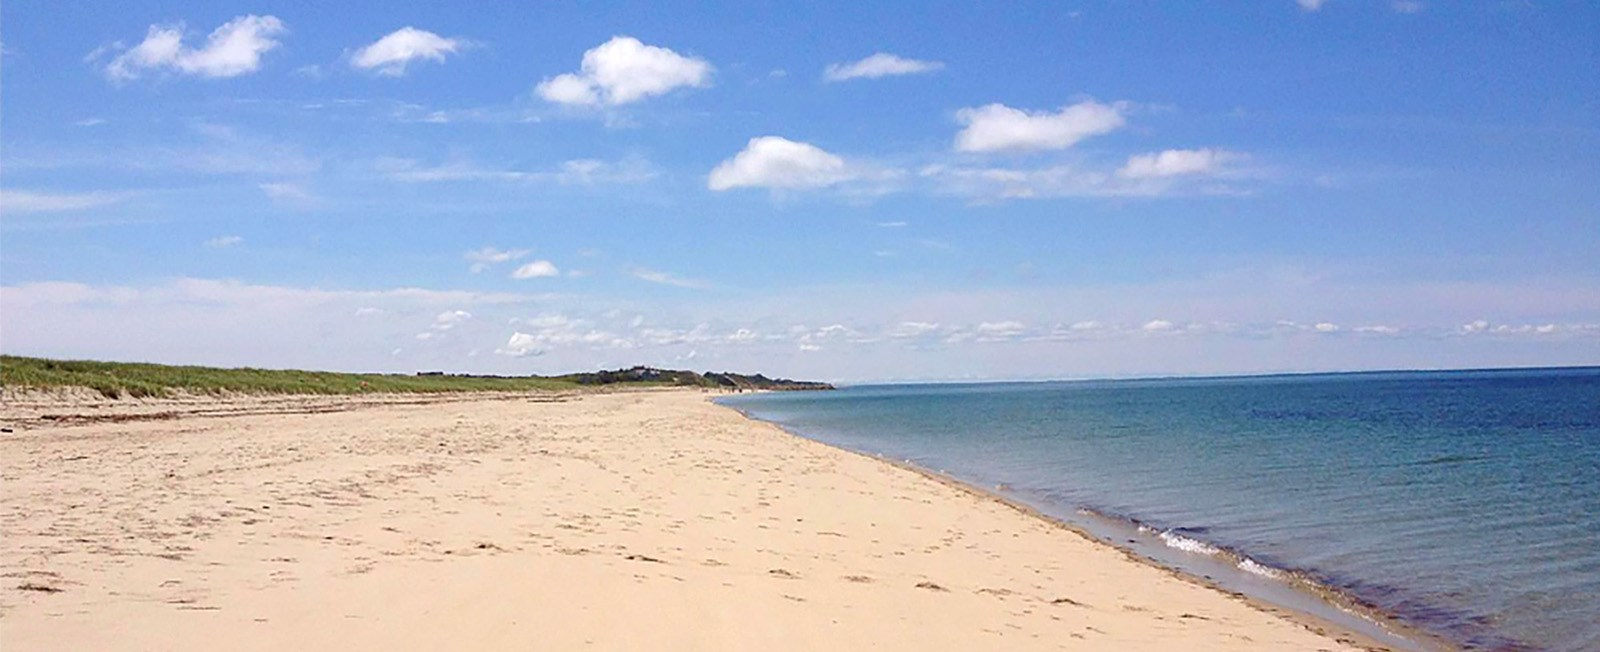 The beaches of the outer Cape are among the most beautiful in the world.